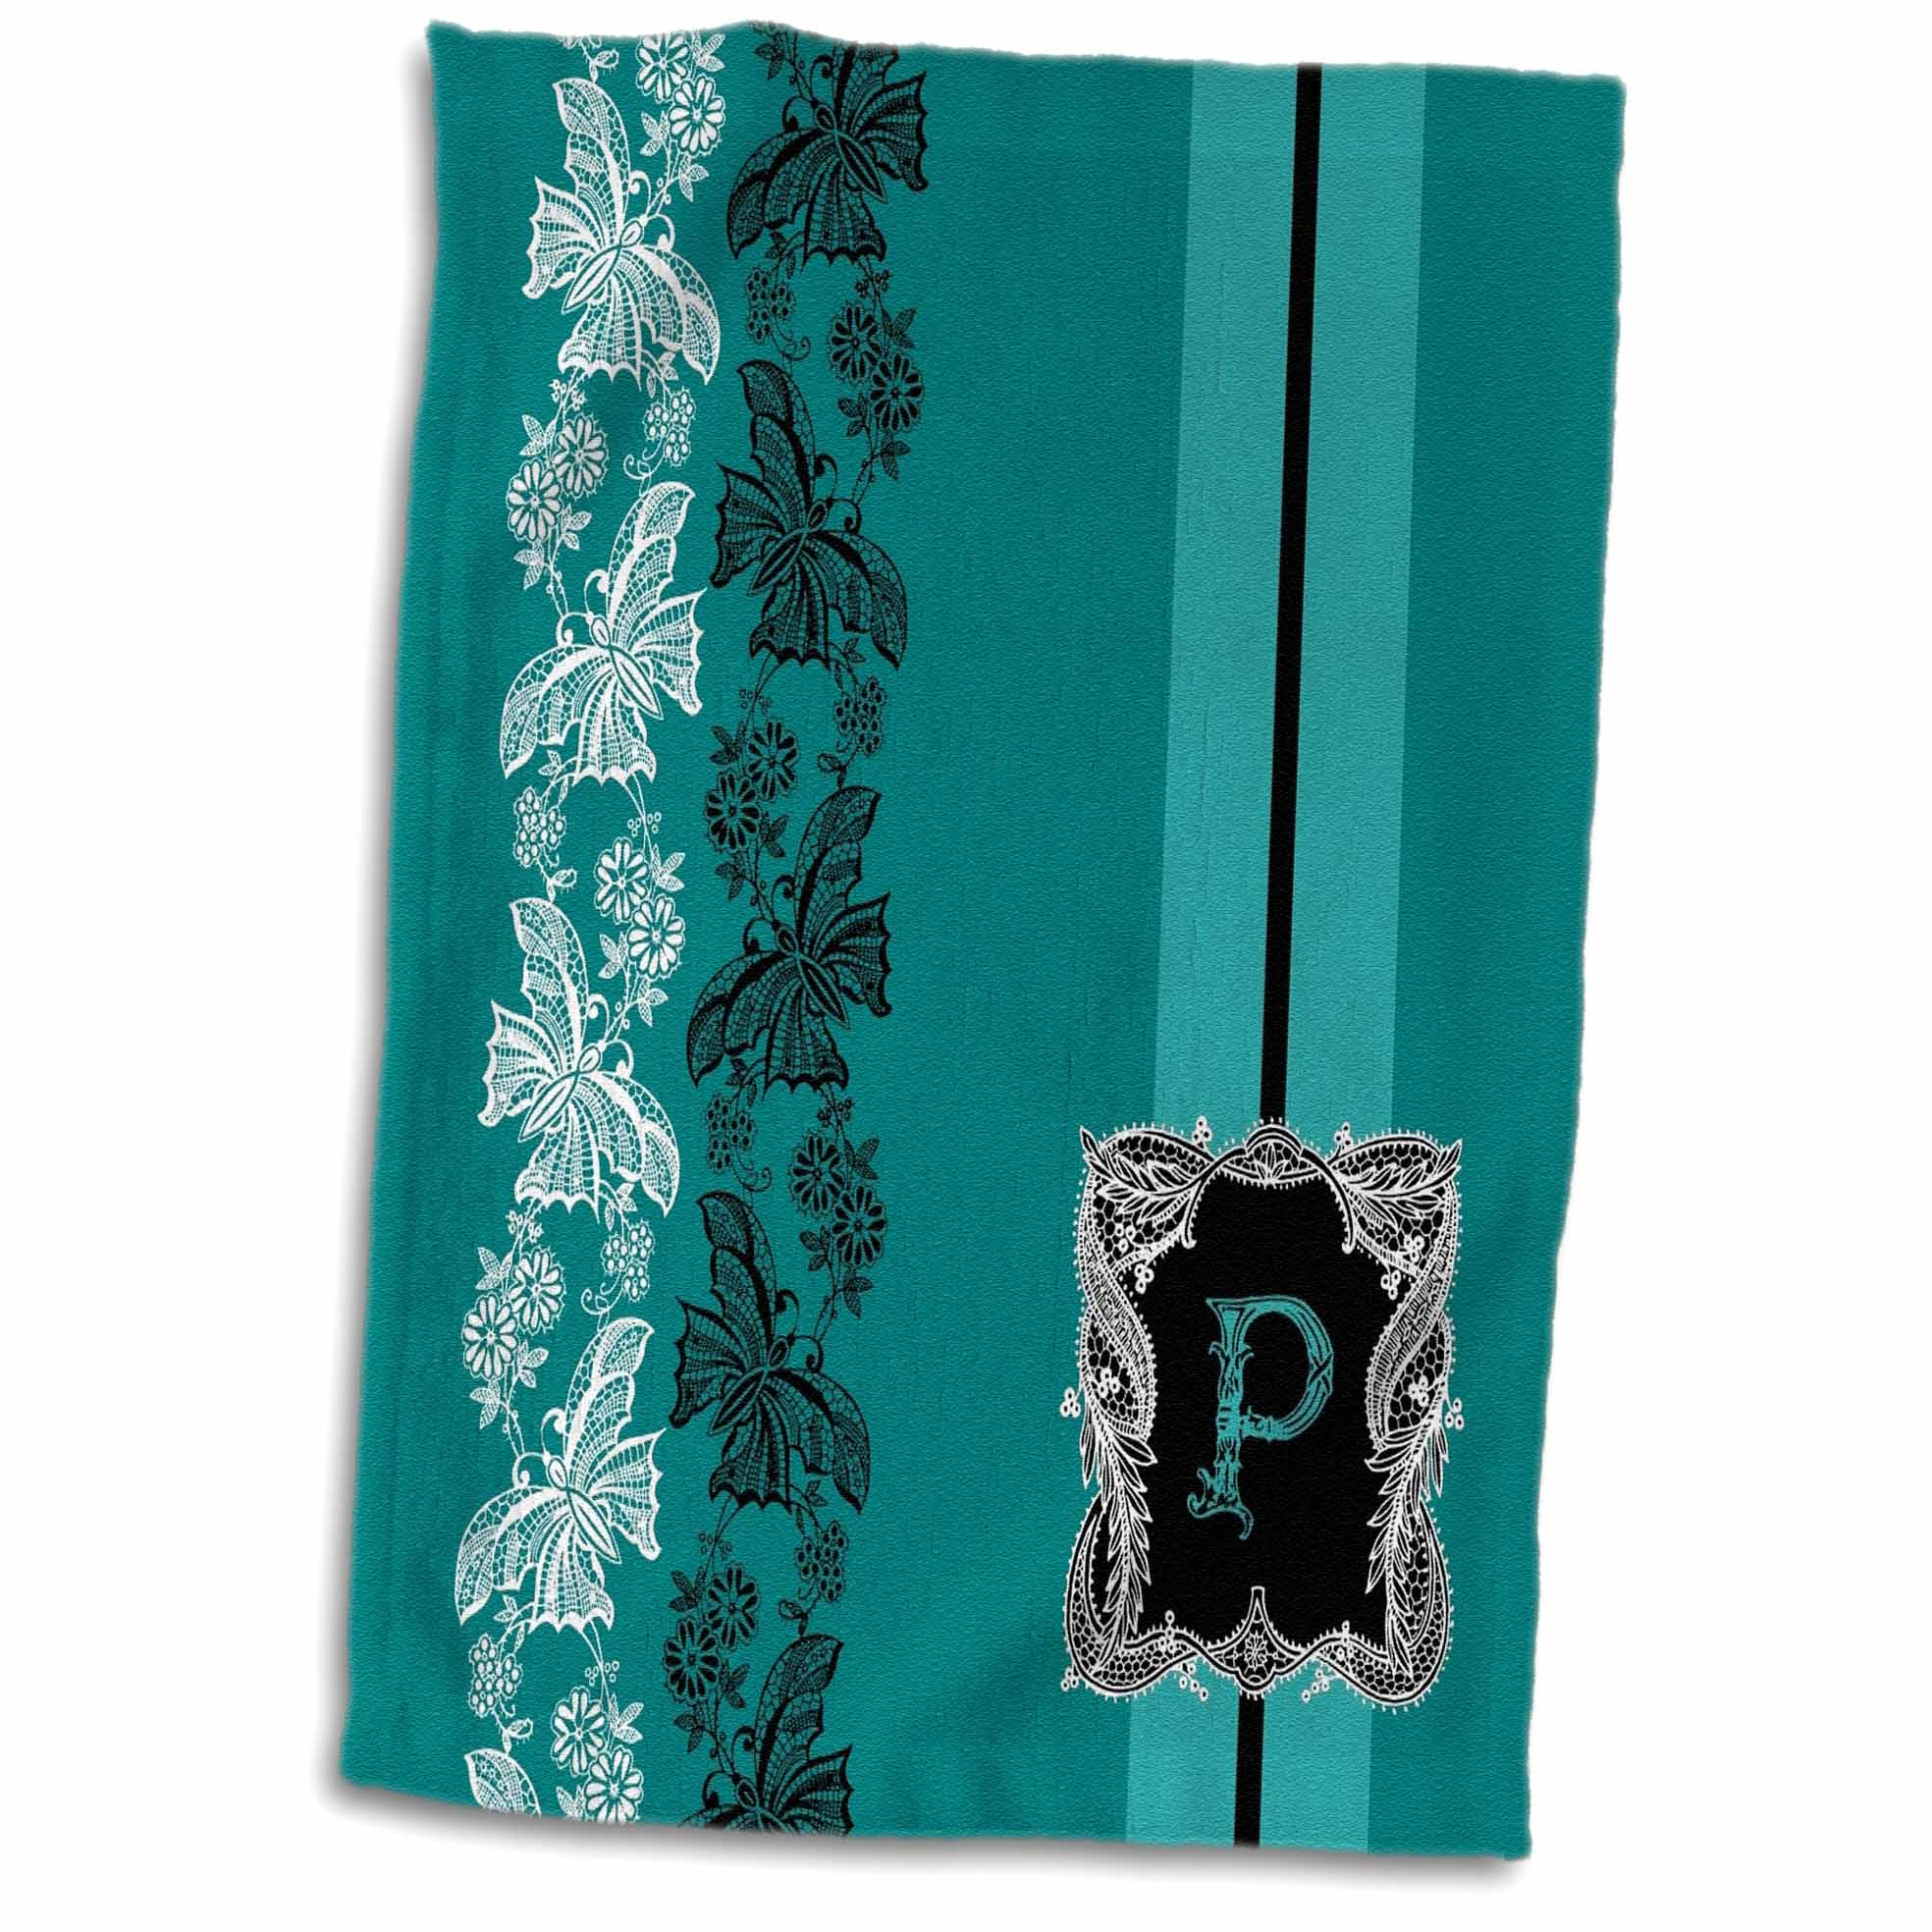 3dRose Monogram Initial P in Teal White and Black Lace - Towel, 15 by 22-inch